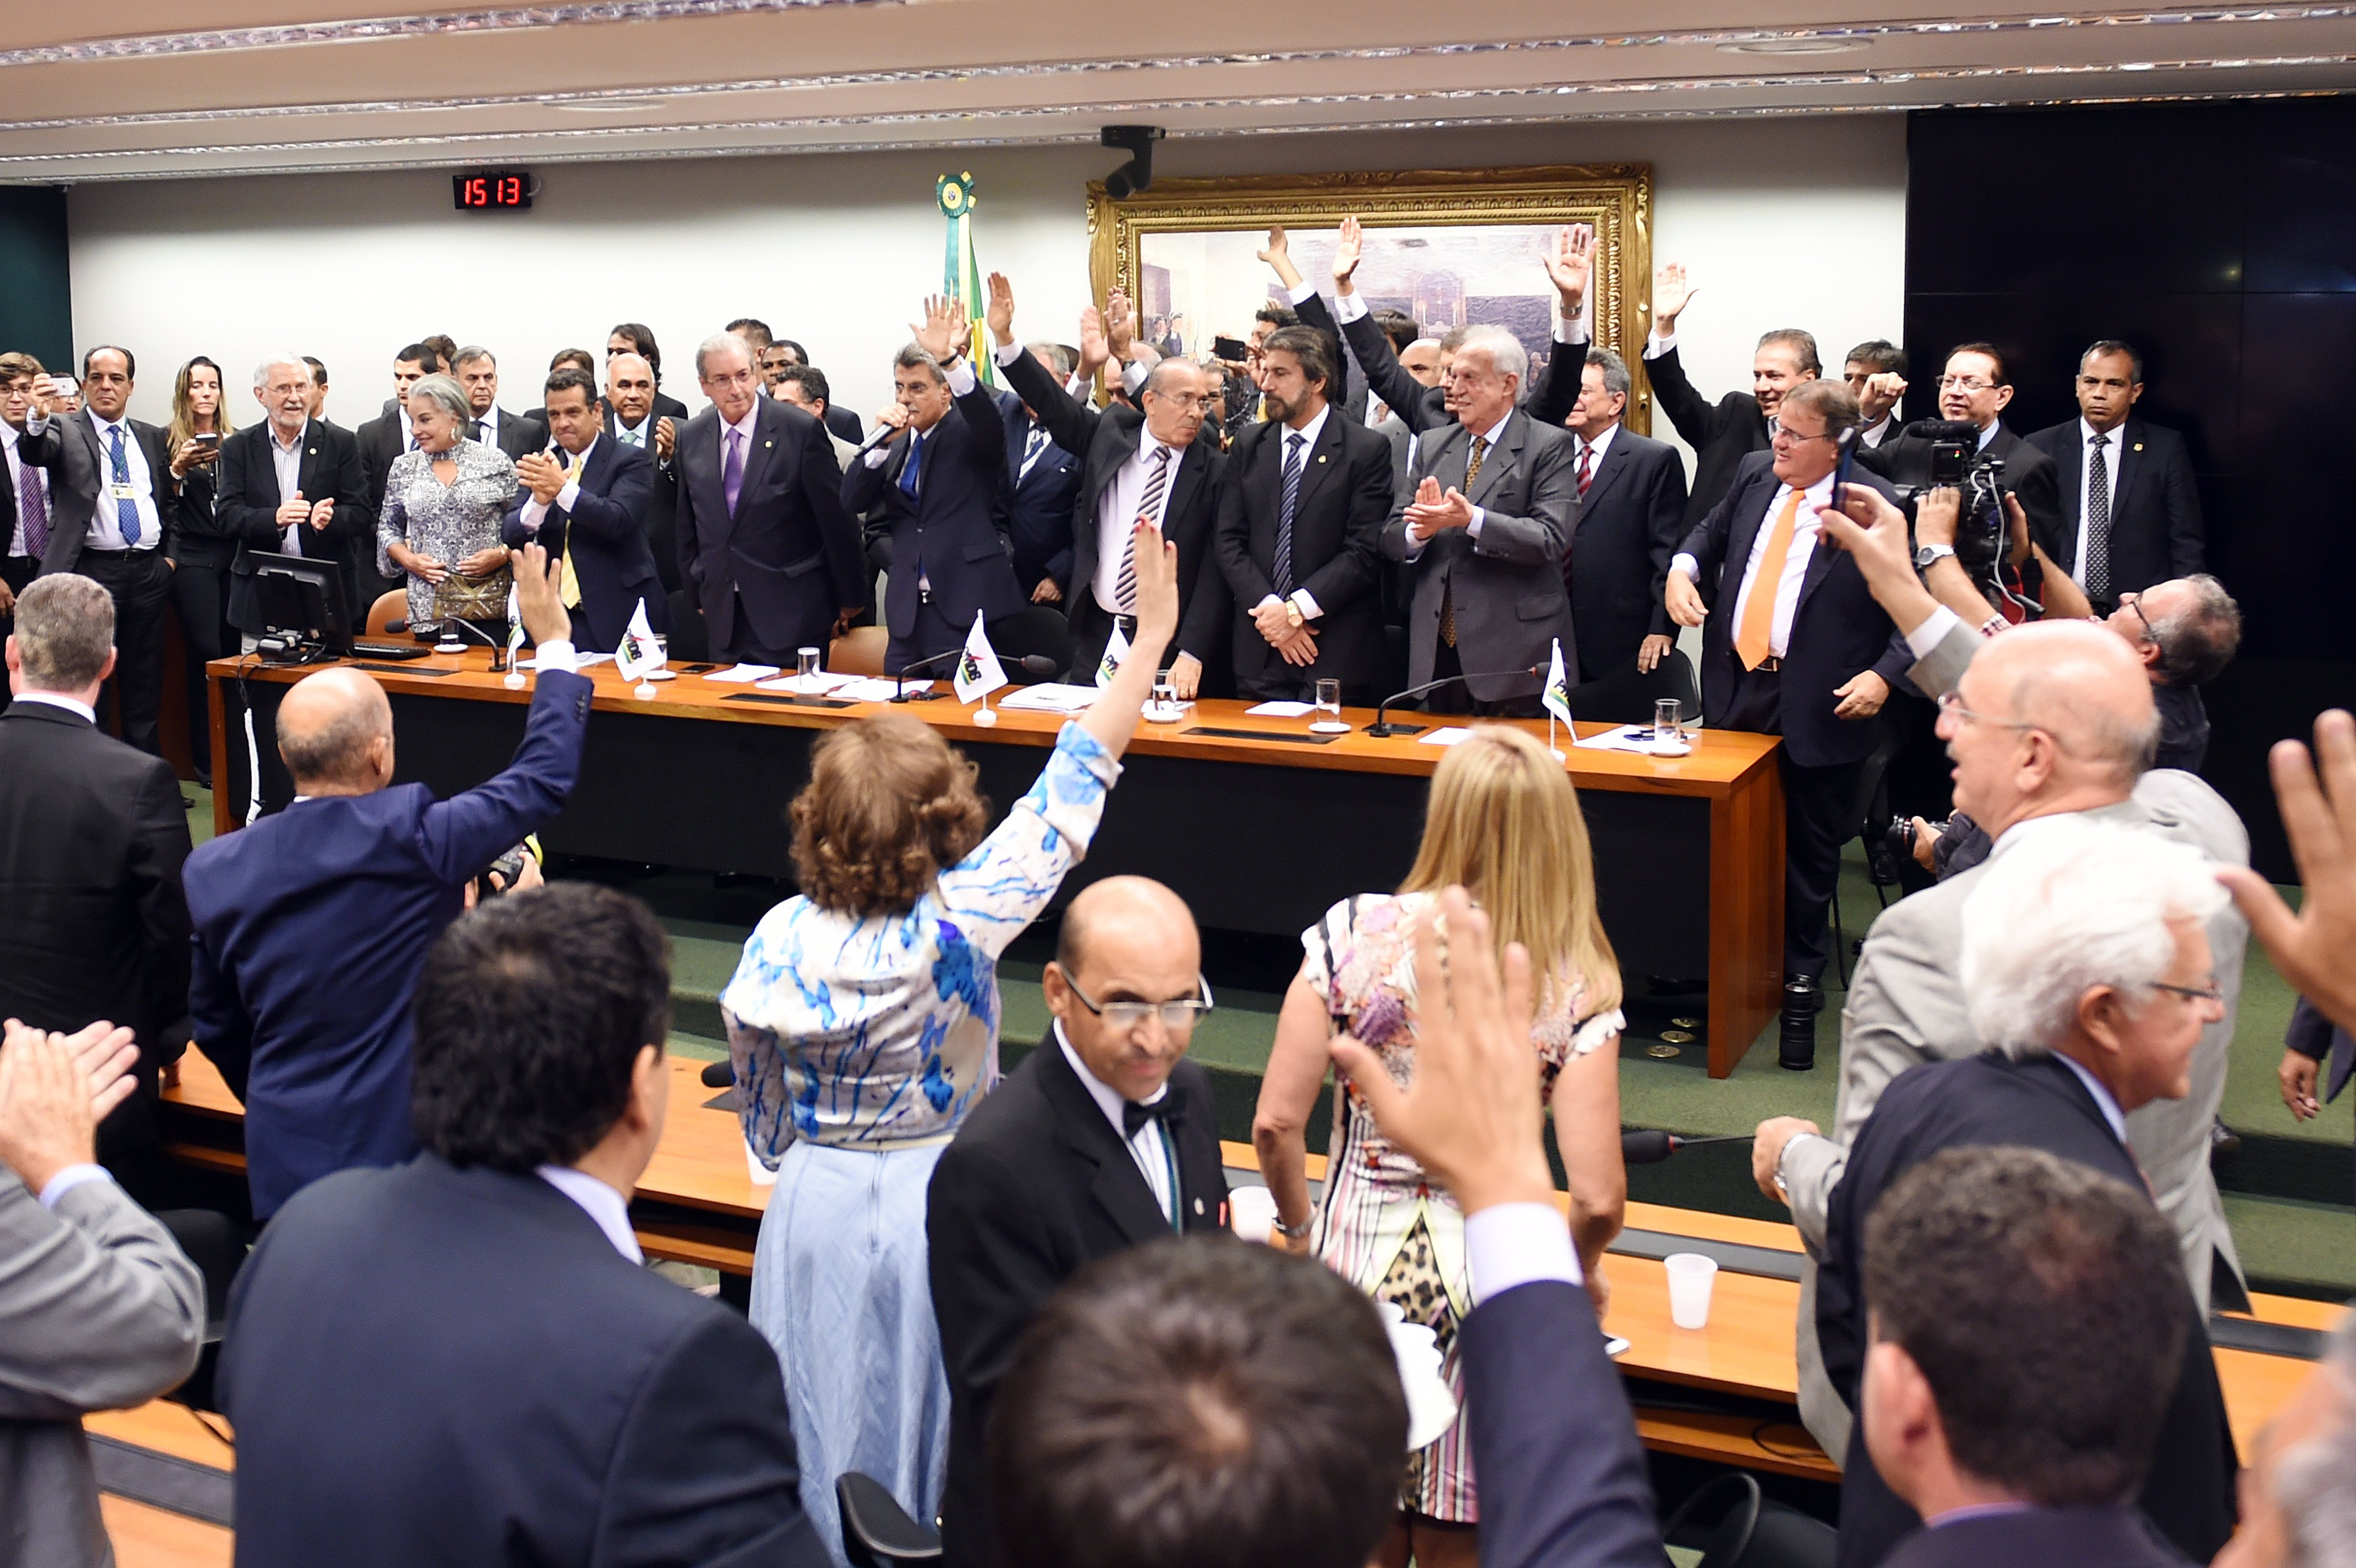 Brazil's PMDB party lawmakers unanimously vote for leaving the government coalition, at the PMDB's headquarters in Brasilia, on March 29, 2016.